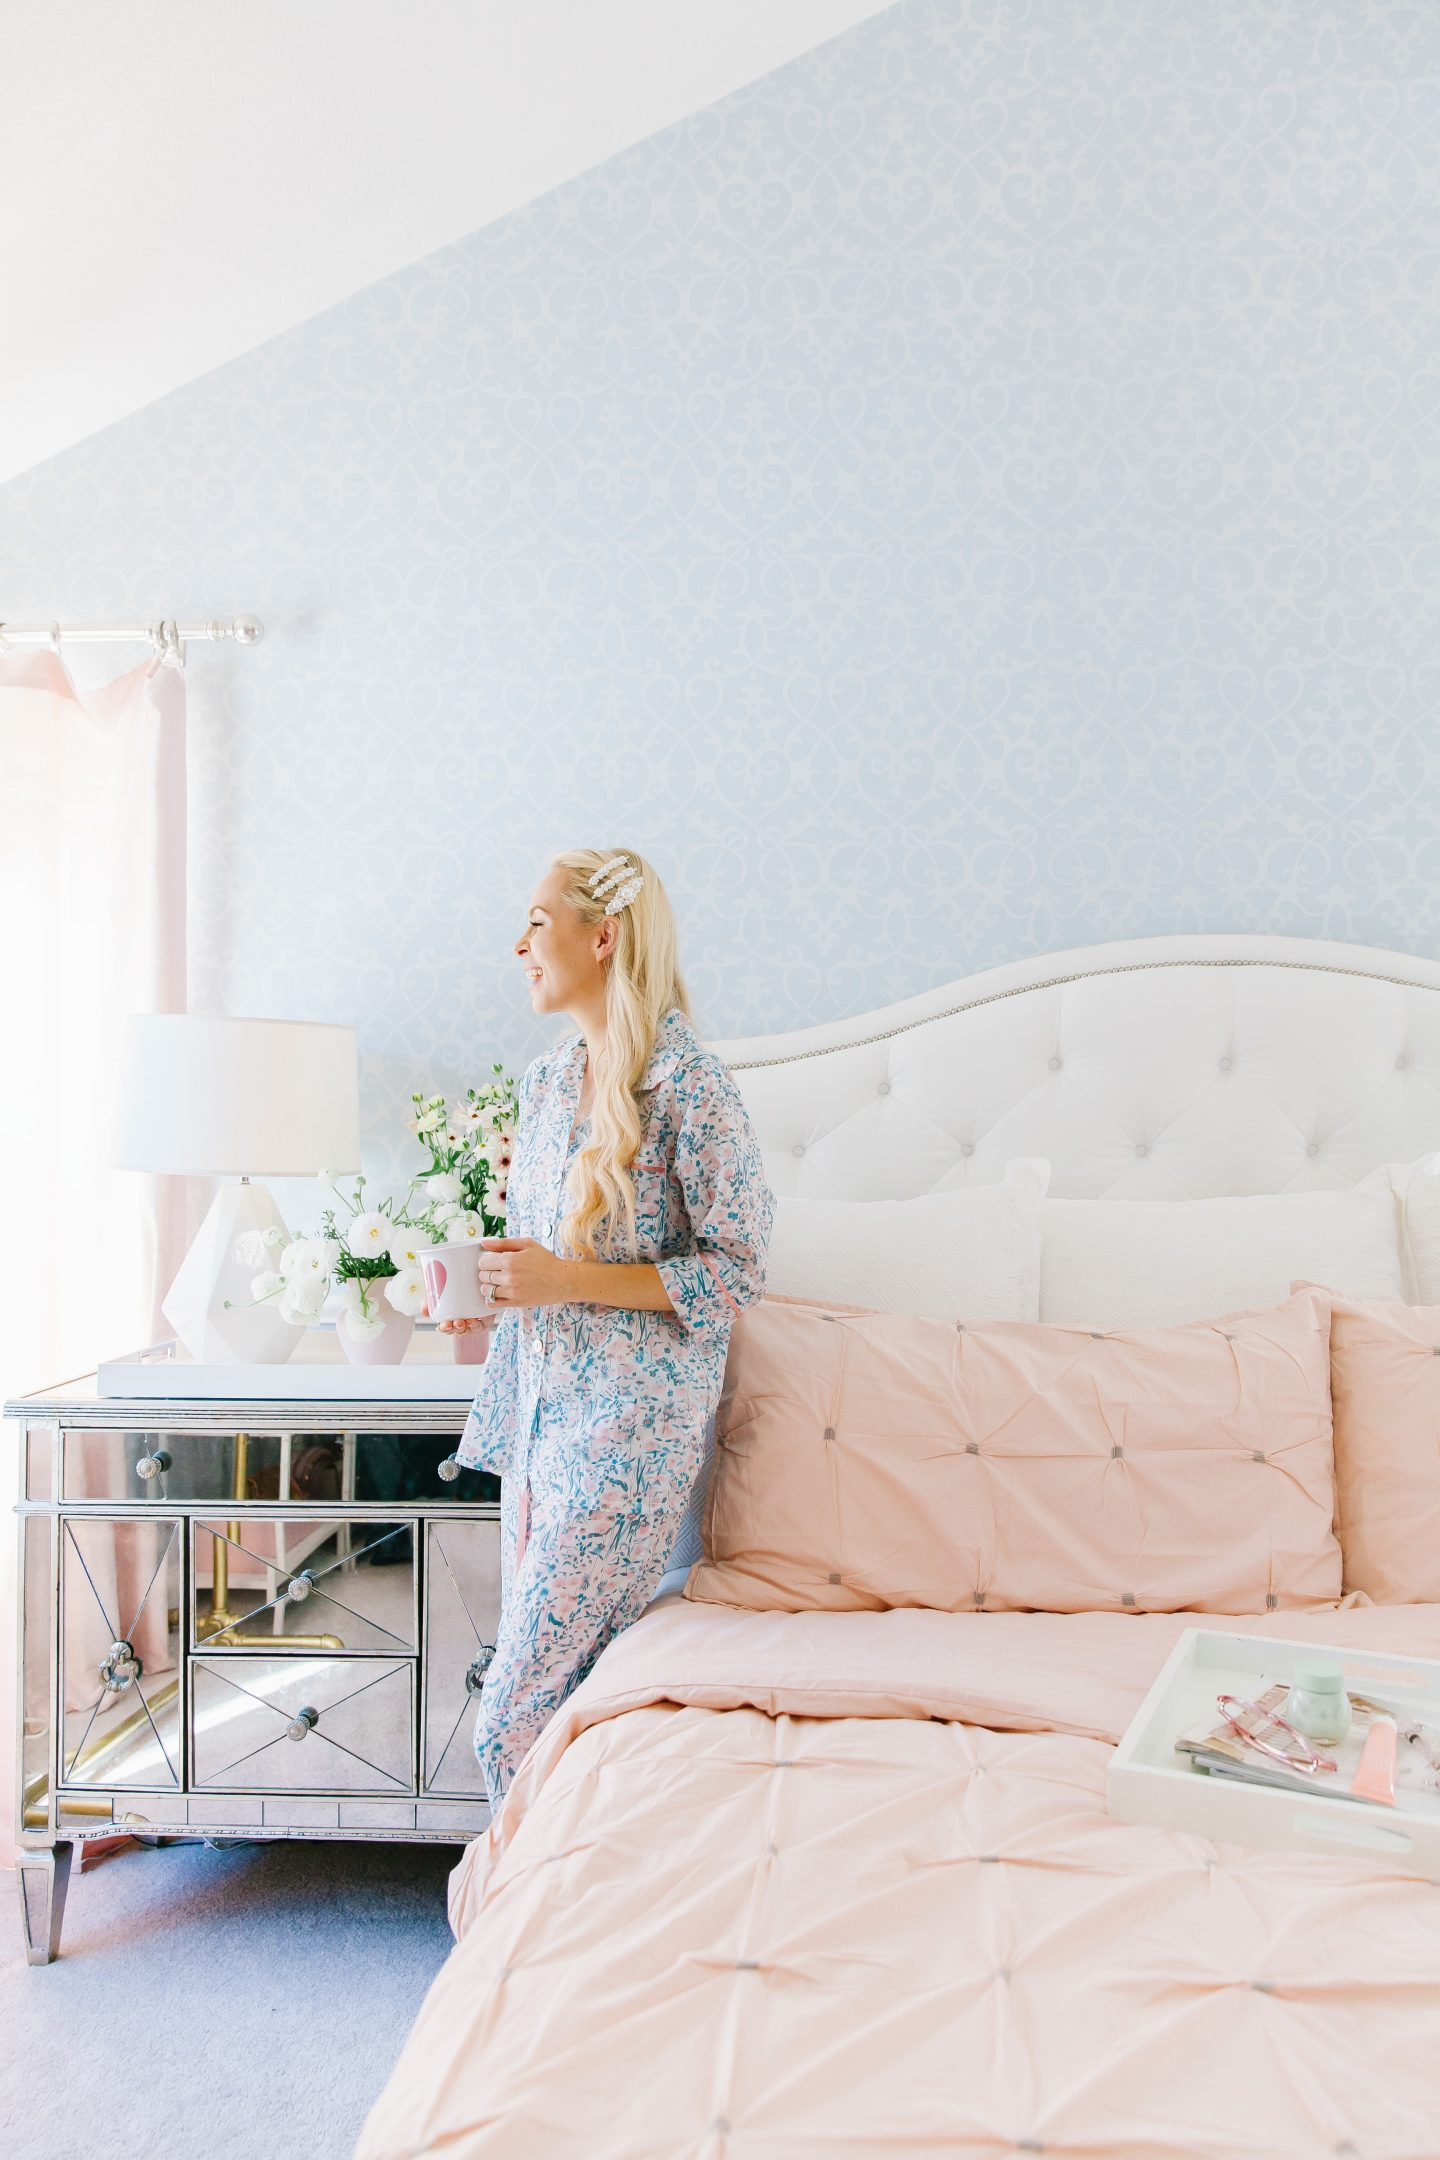 Bring Heart Home With Stage Blush Bedding Featured By Top US Life And Style Blog Lombard Fifth